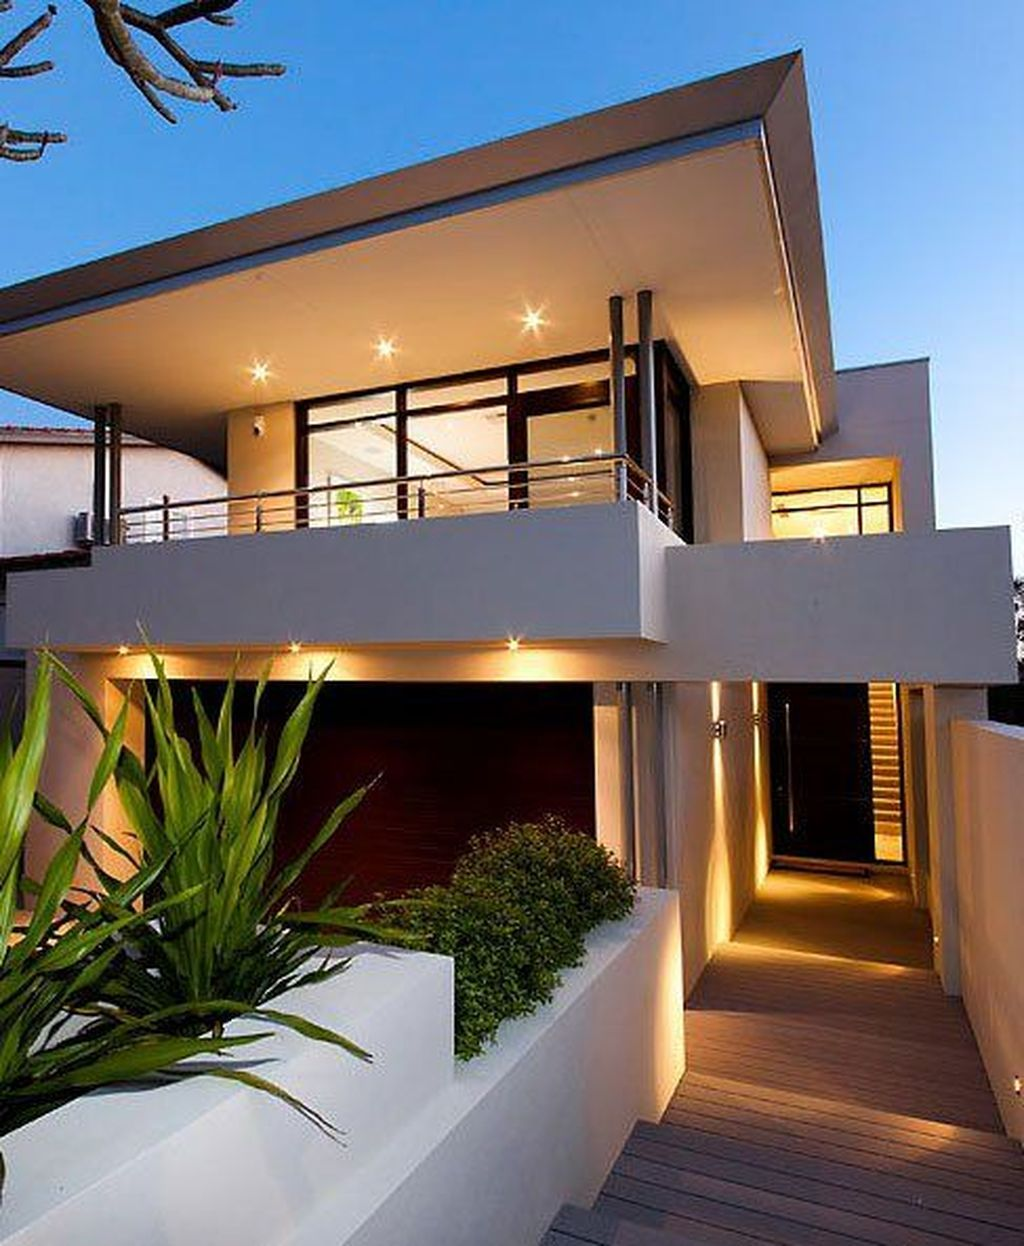 Contemporary Home Exterior Design Ideas: Pin By Centeroom.co On Gardening And Exterior Design In